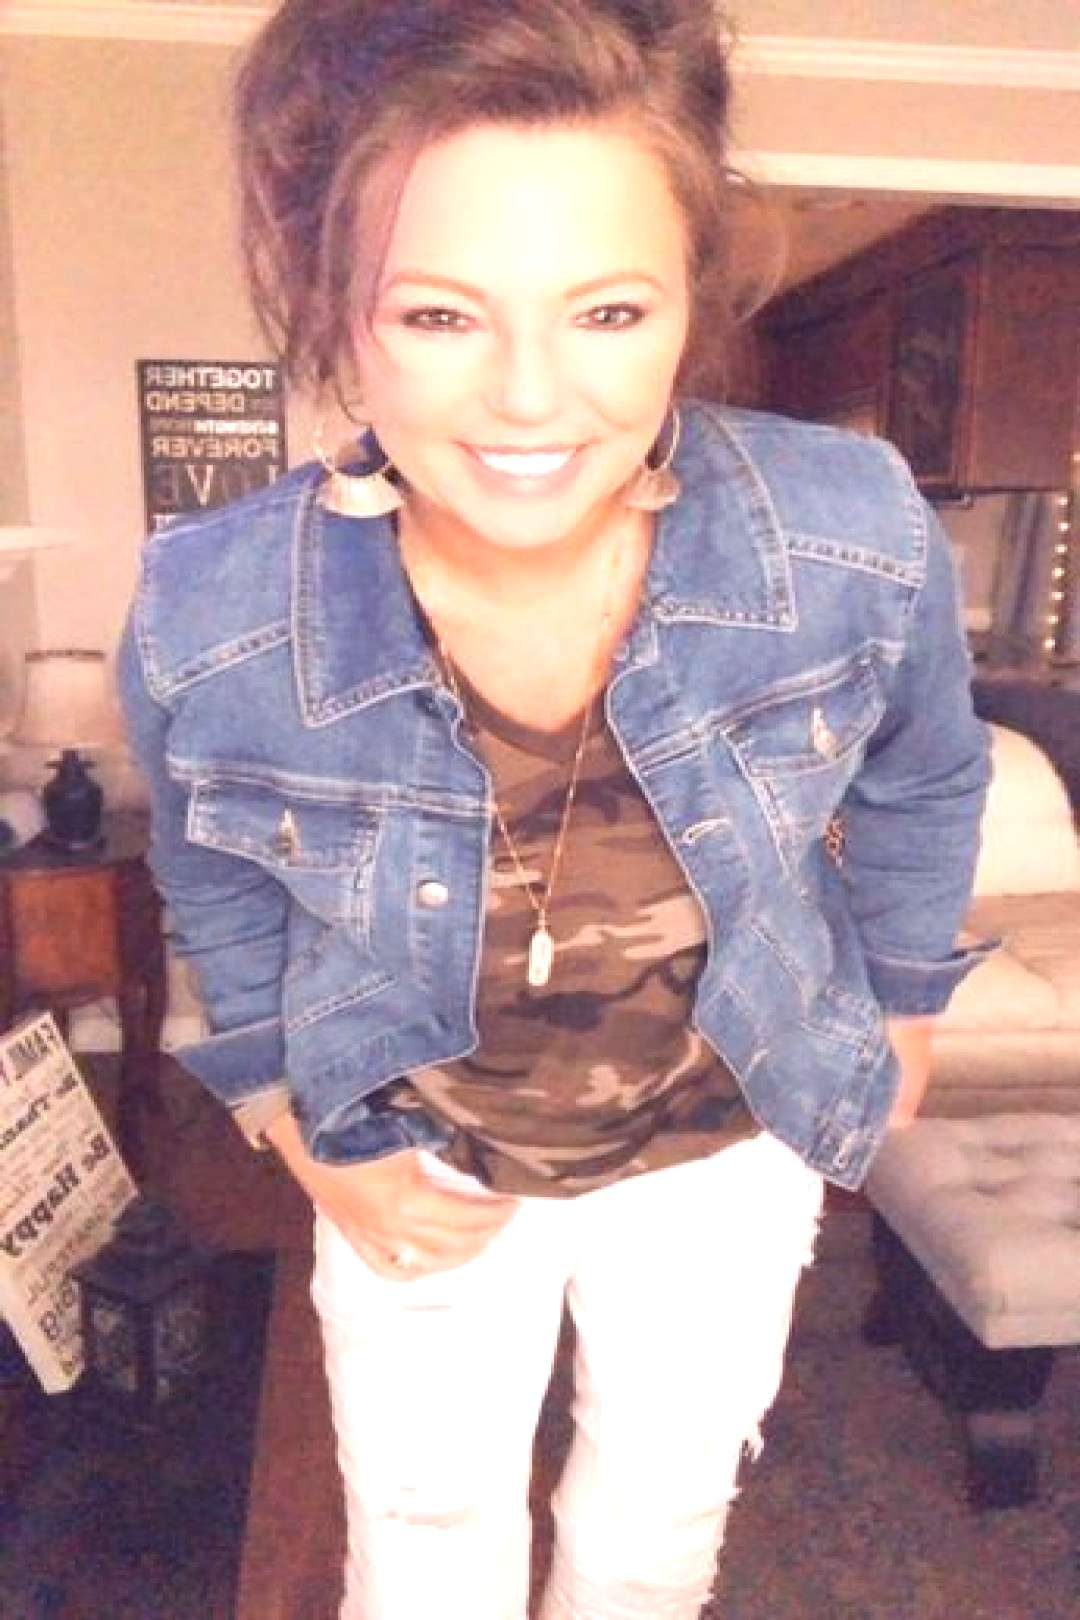 Rock the CAMO look with a denim jacket and white skinny jeans! See more outfit ideas for women over